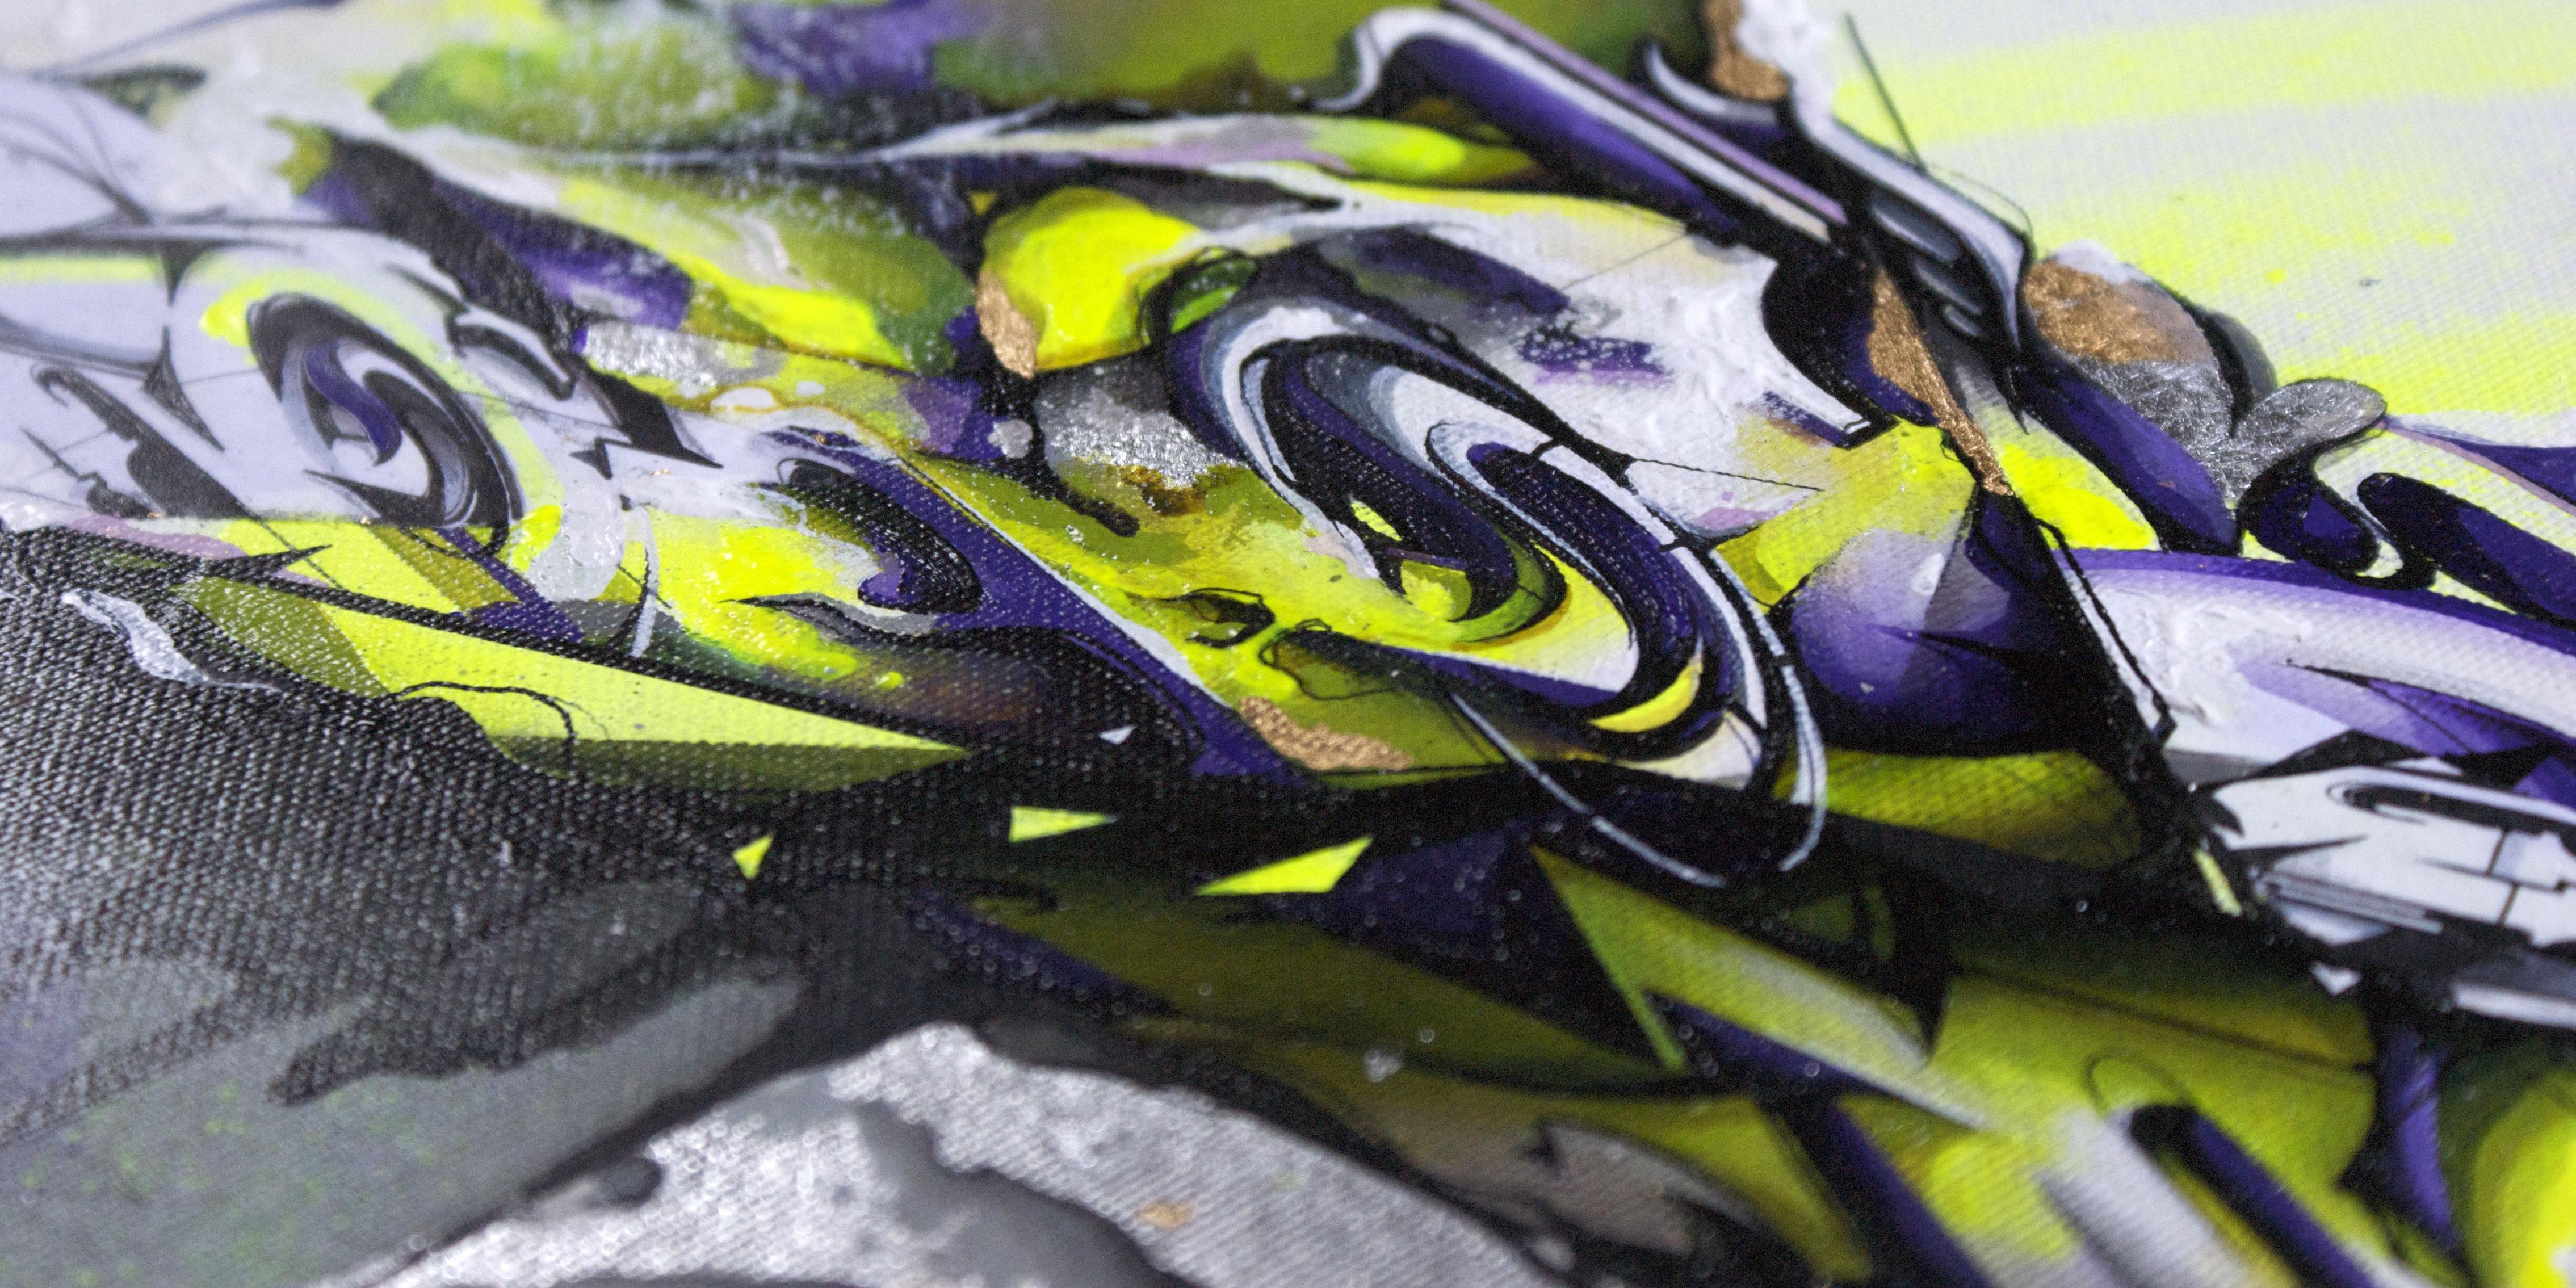 A work by Does - Forcefield canvas detail 1